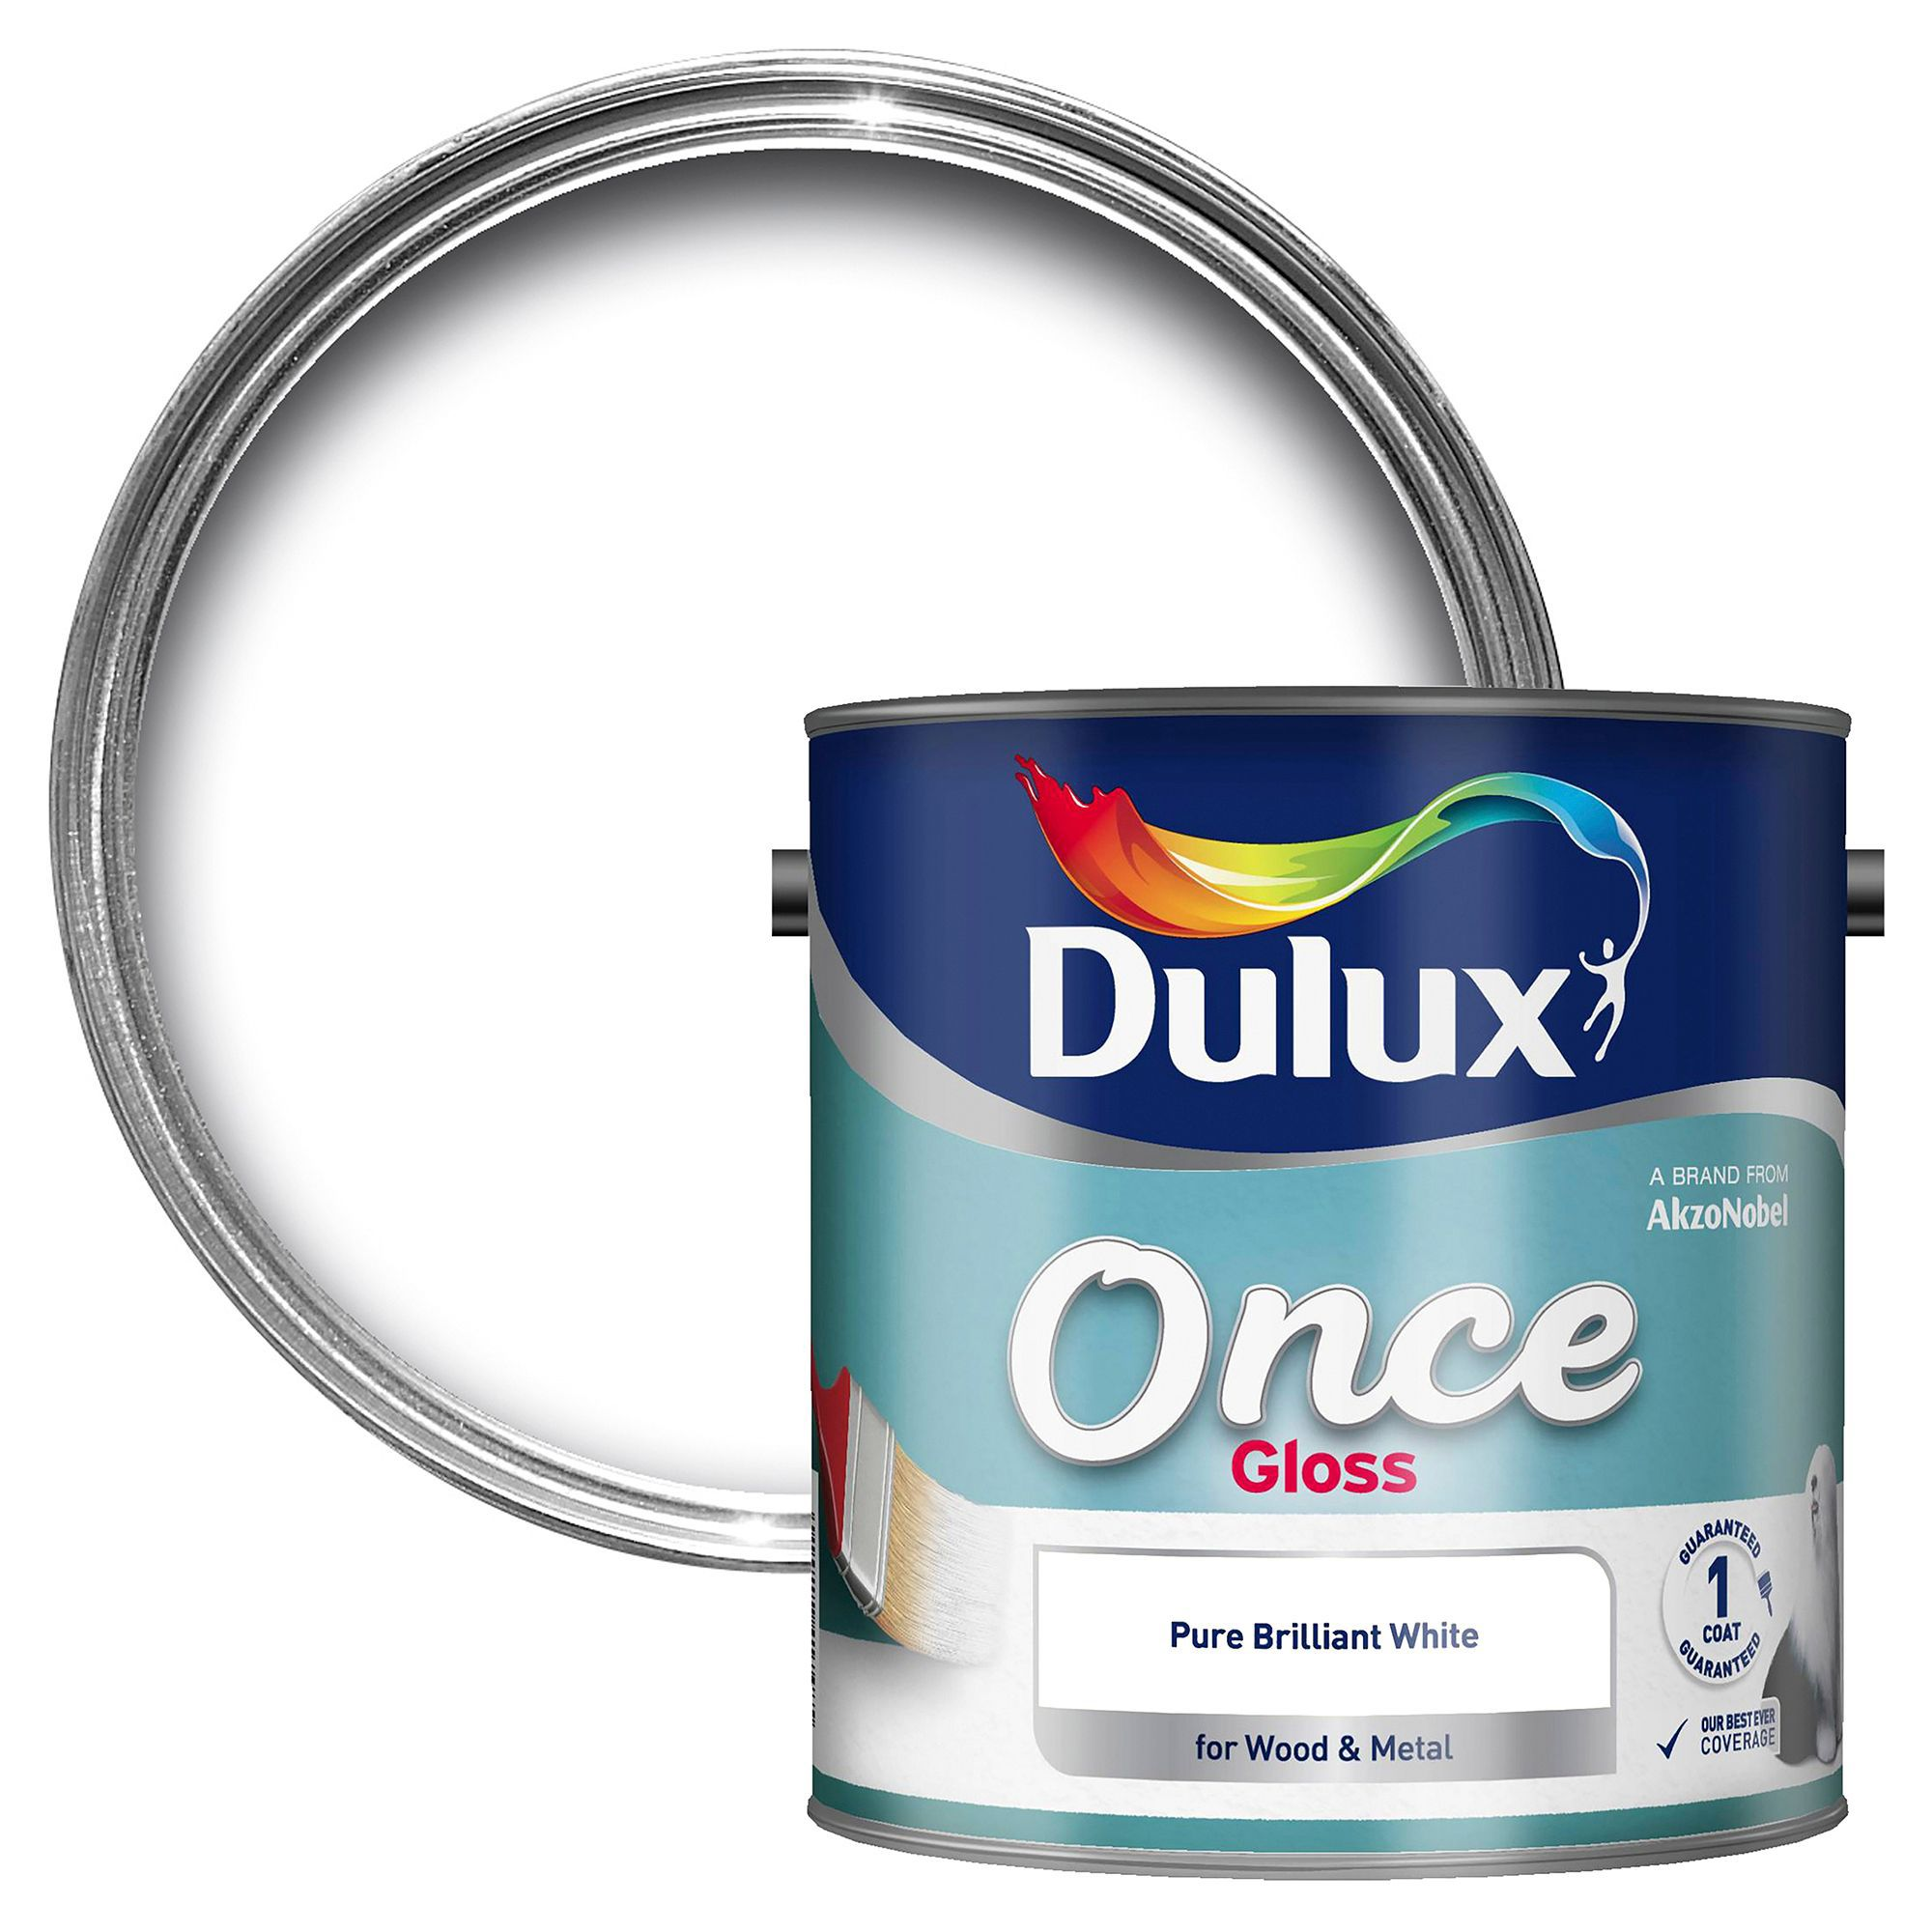 Dulux Interior Pure Brilliant White Gloss Wood & Metal Paint 2500ml